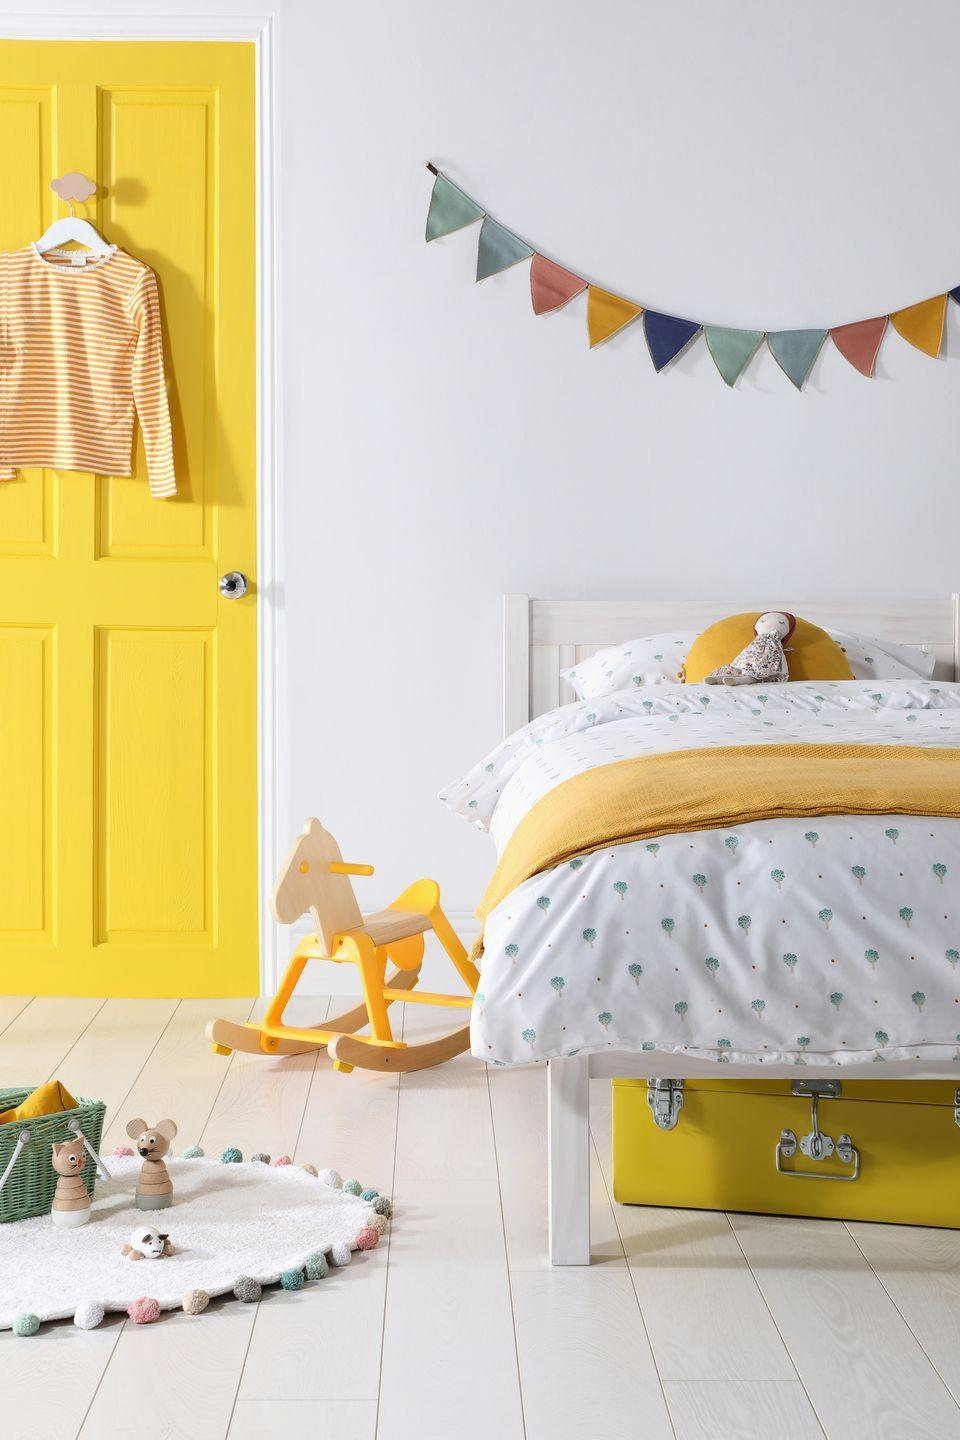 """<p>Another fabulous colour to consider for a girl's bedroom is sunshine yellow. It's bright and cheery and looks great with white. And, it can work well for boys too. Follow the colour through into the bedding – a cushion and a throw in a similar shade works wonders for a cohesive look.</p><p>Pictured: Sunny Days Rio white washed single bed, <a href=""""https://go.redirectingat.com?id=127X1599956&url=https%3A%2F%2Fwww.furniturechoice.co.uk%2Fbedroom%2Fbeds%2Frio-white-washed-single-bed_wb10000814&sref=https%3A%2F%2Fwww.housebeautiful.com%2Fuk%2Fdecorate%2Fbedroom%2Fg35589644%2Fgirls-bedroom-ideas%2F"""" rel=""""nofollow noopener"""" target=""""_blank"""" data-ylk=""""slk:Furniture Choice"""" class=""""link rapid-noclick-resp"""">Furniture Choice</a></p>"""